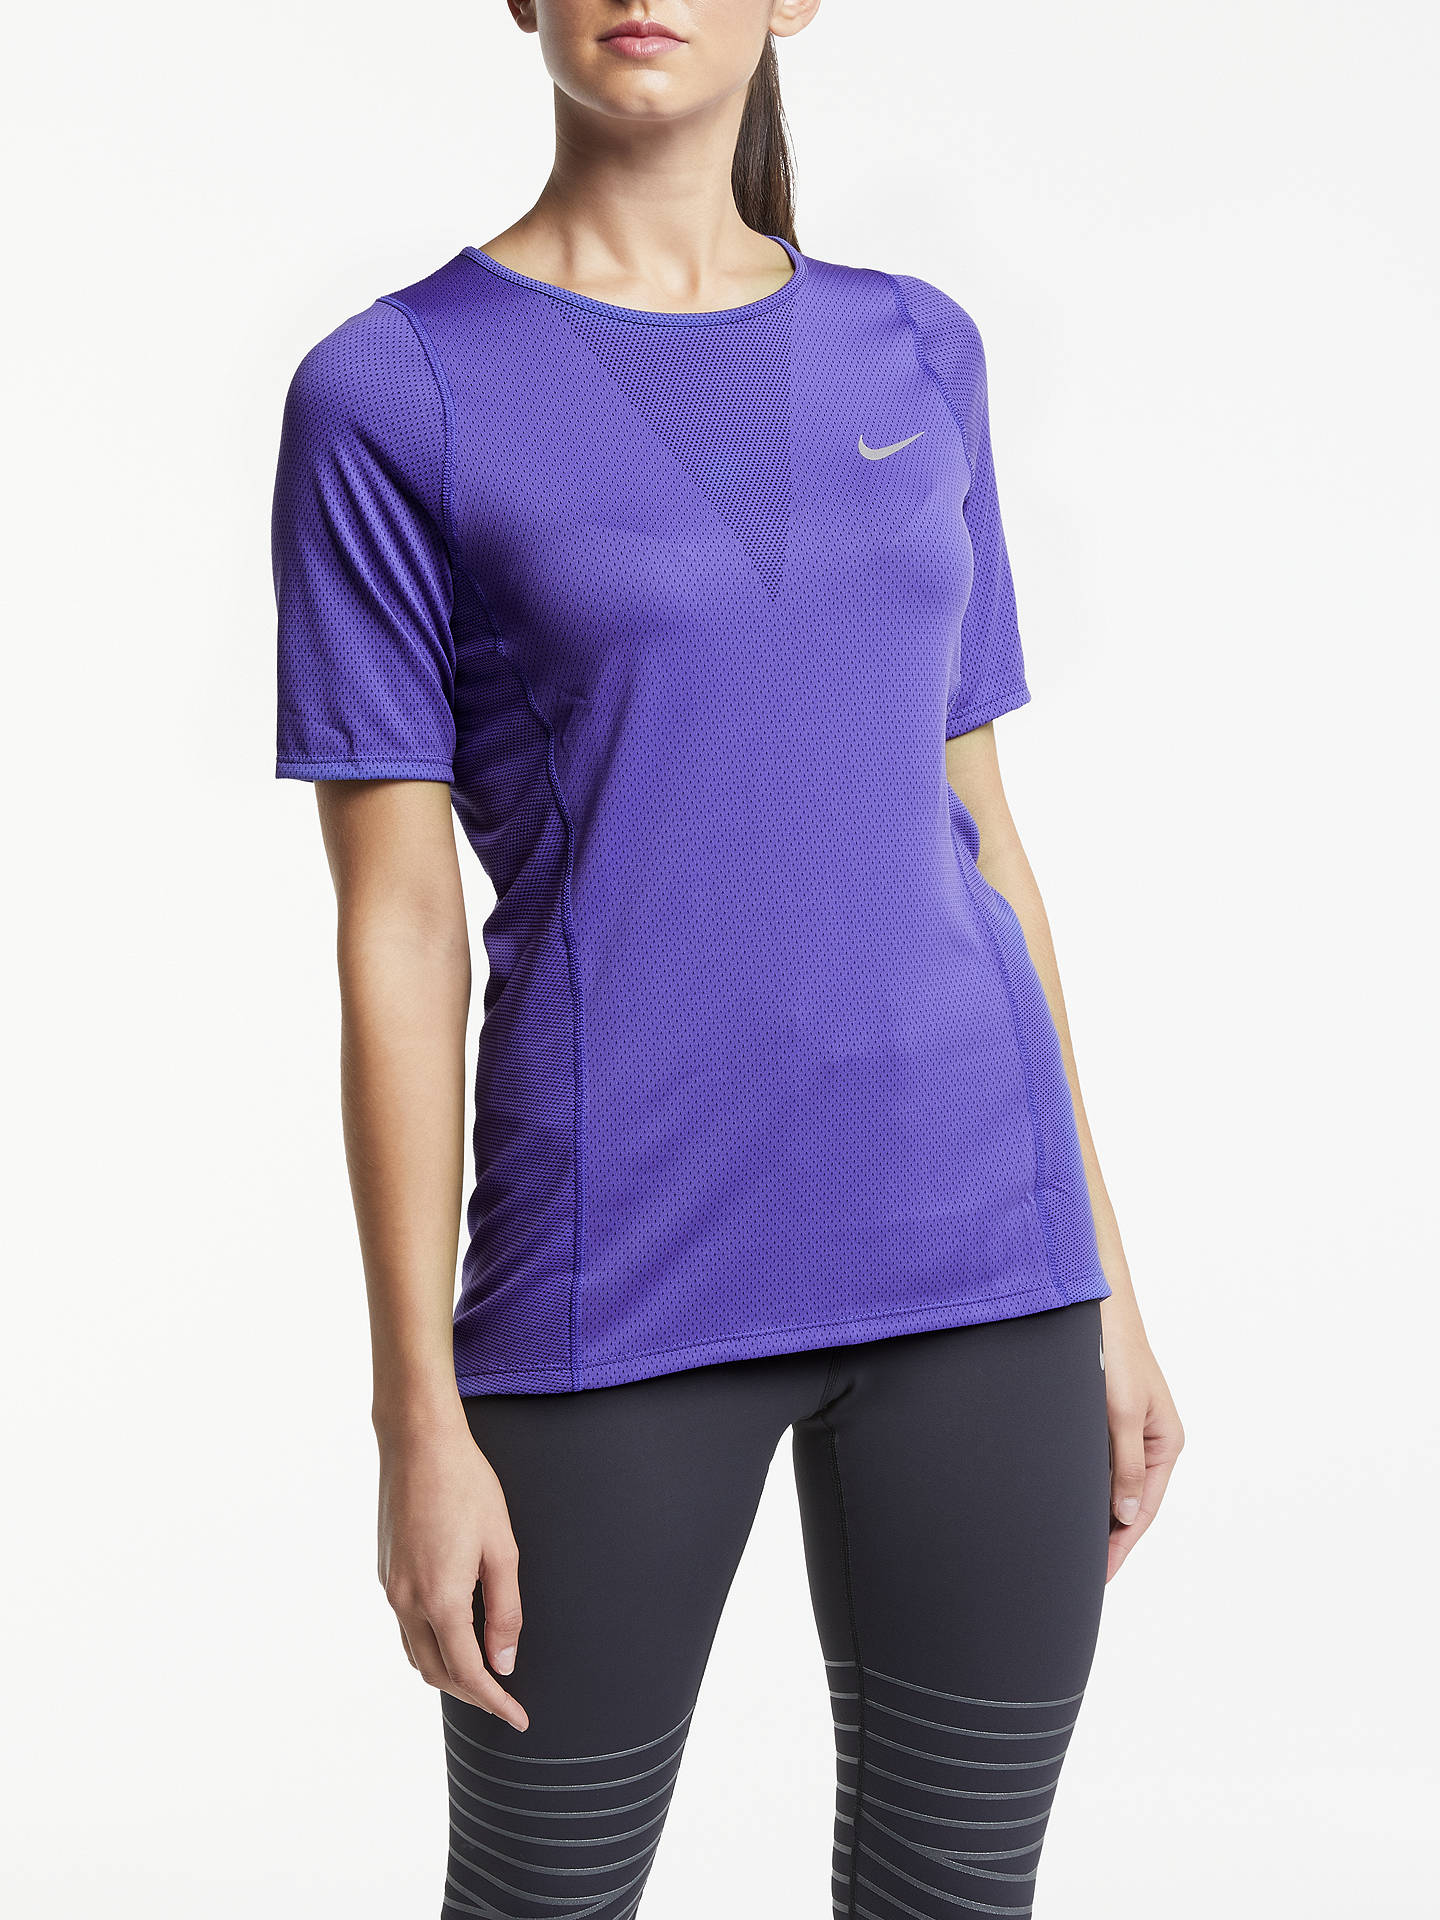 Clothes, Shoes & Accessories Nike Zonal Cooling Top And To Have A Long Life.